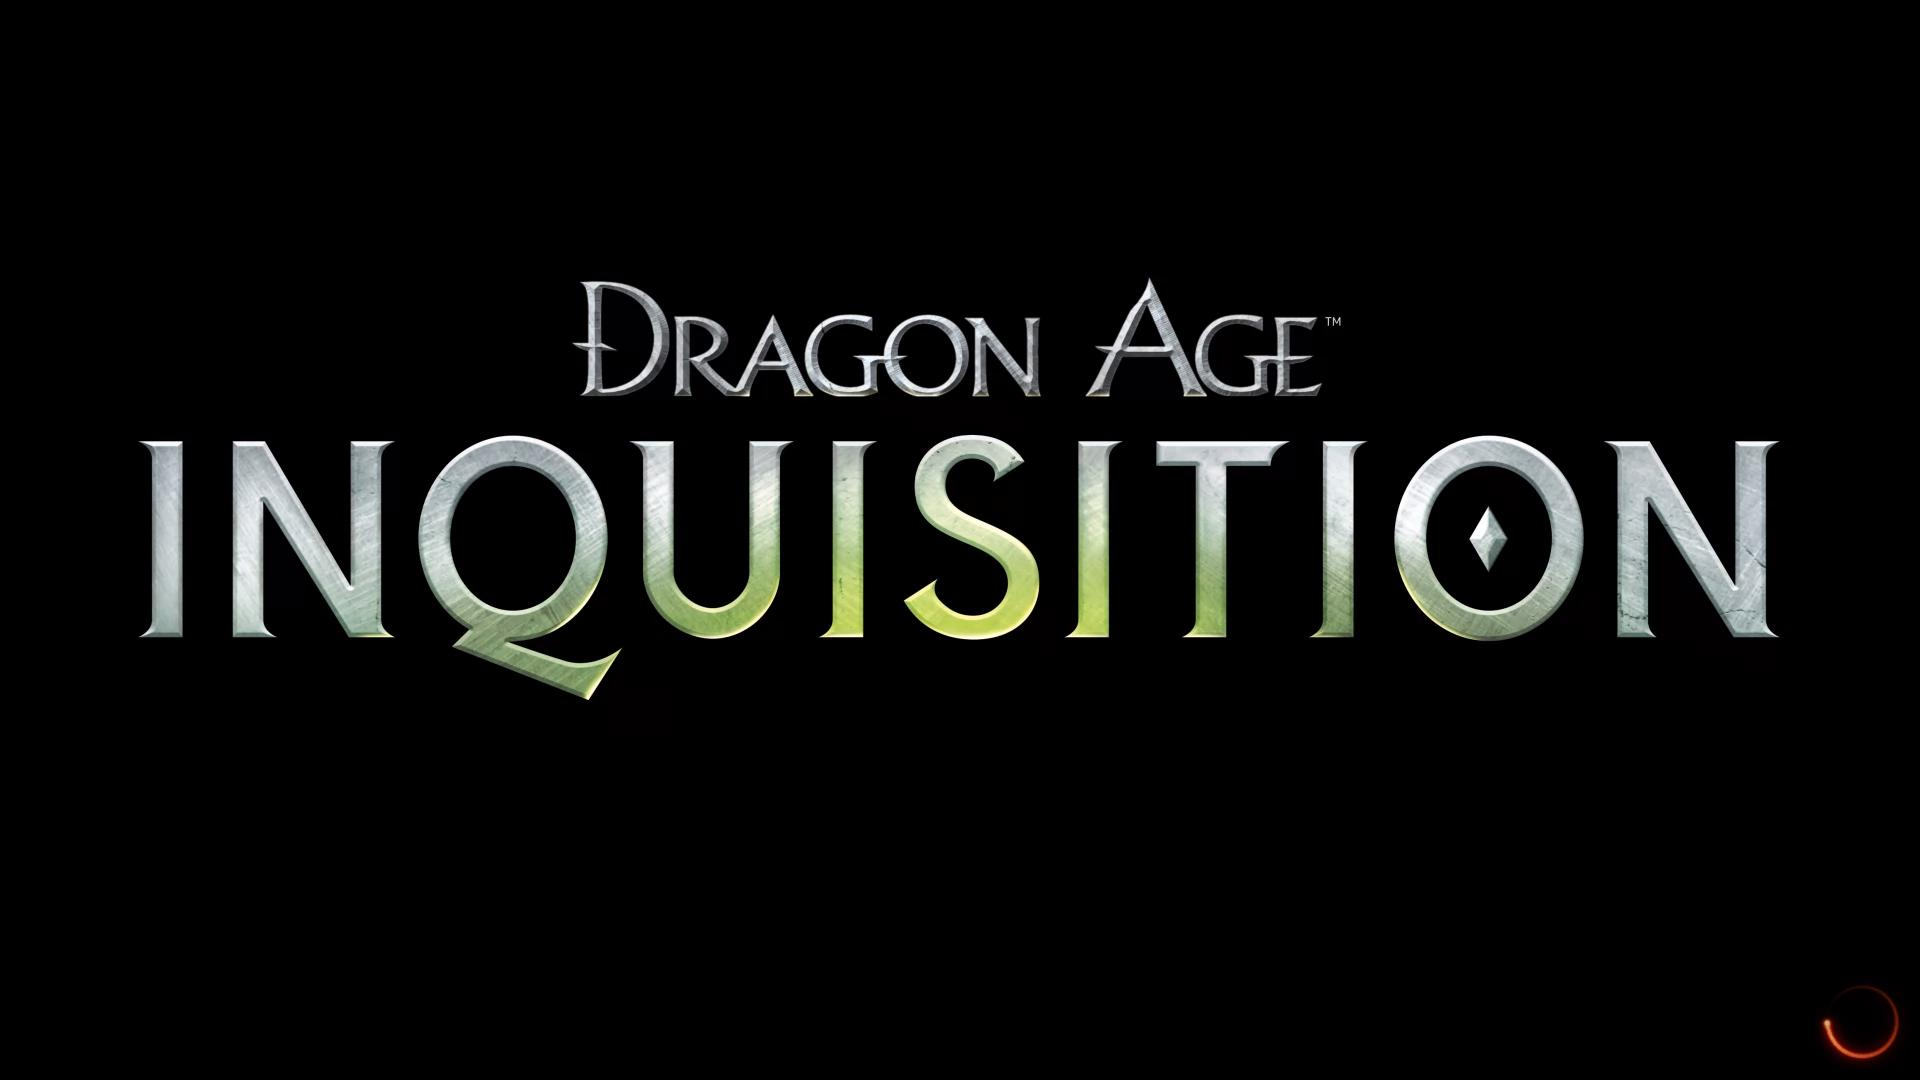 DragonAgeInquisition 2015-01-07 21-03-35-69